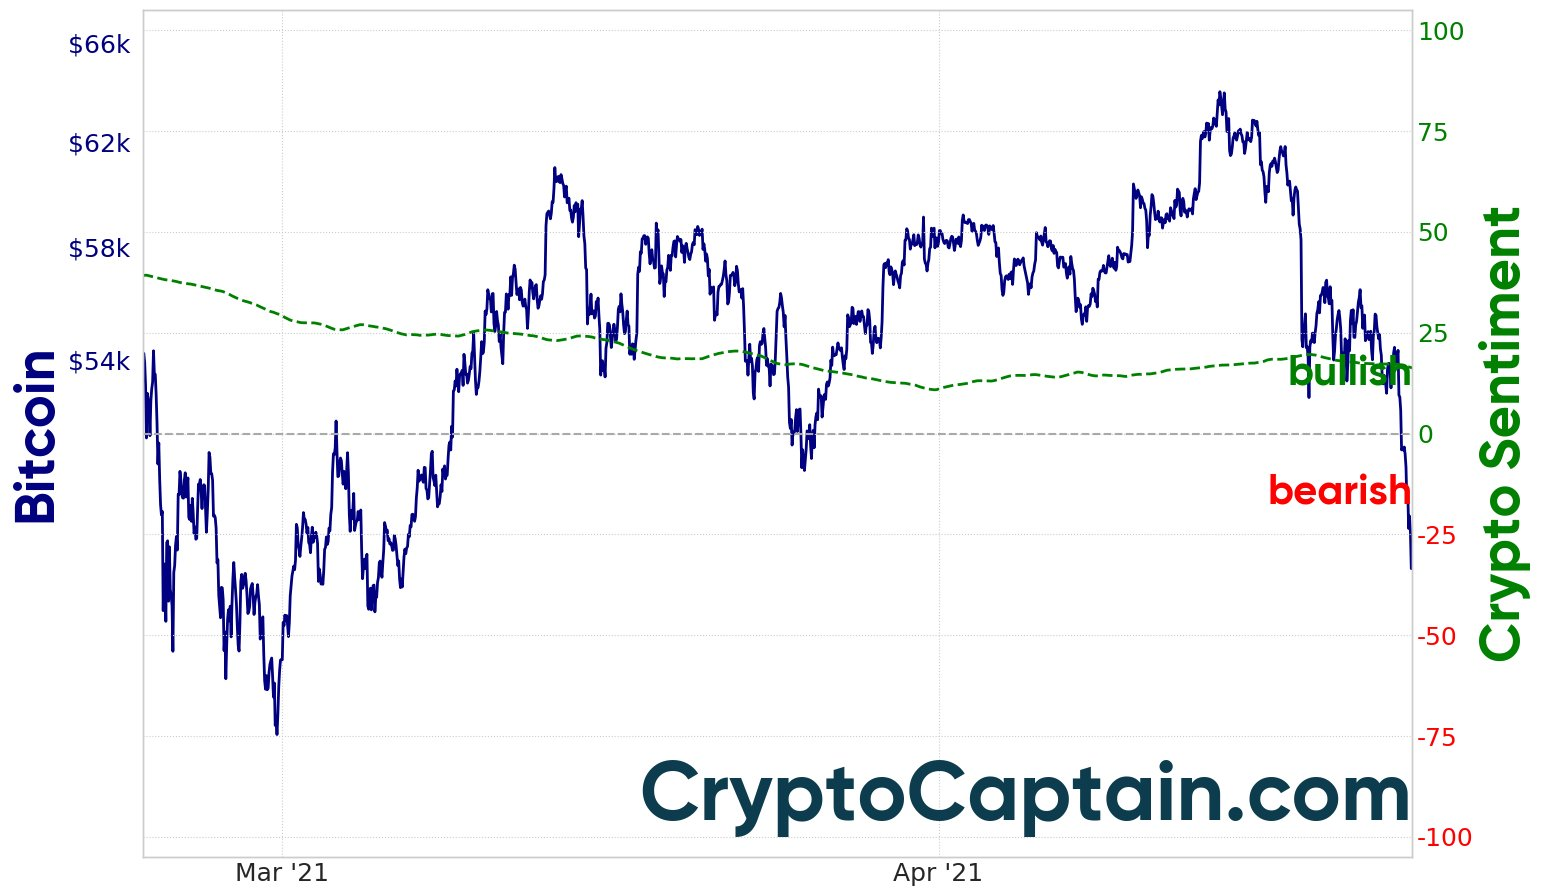 Current Crypto and Bitcoin Sentiment